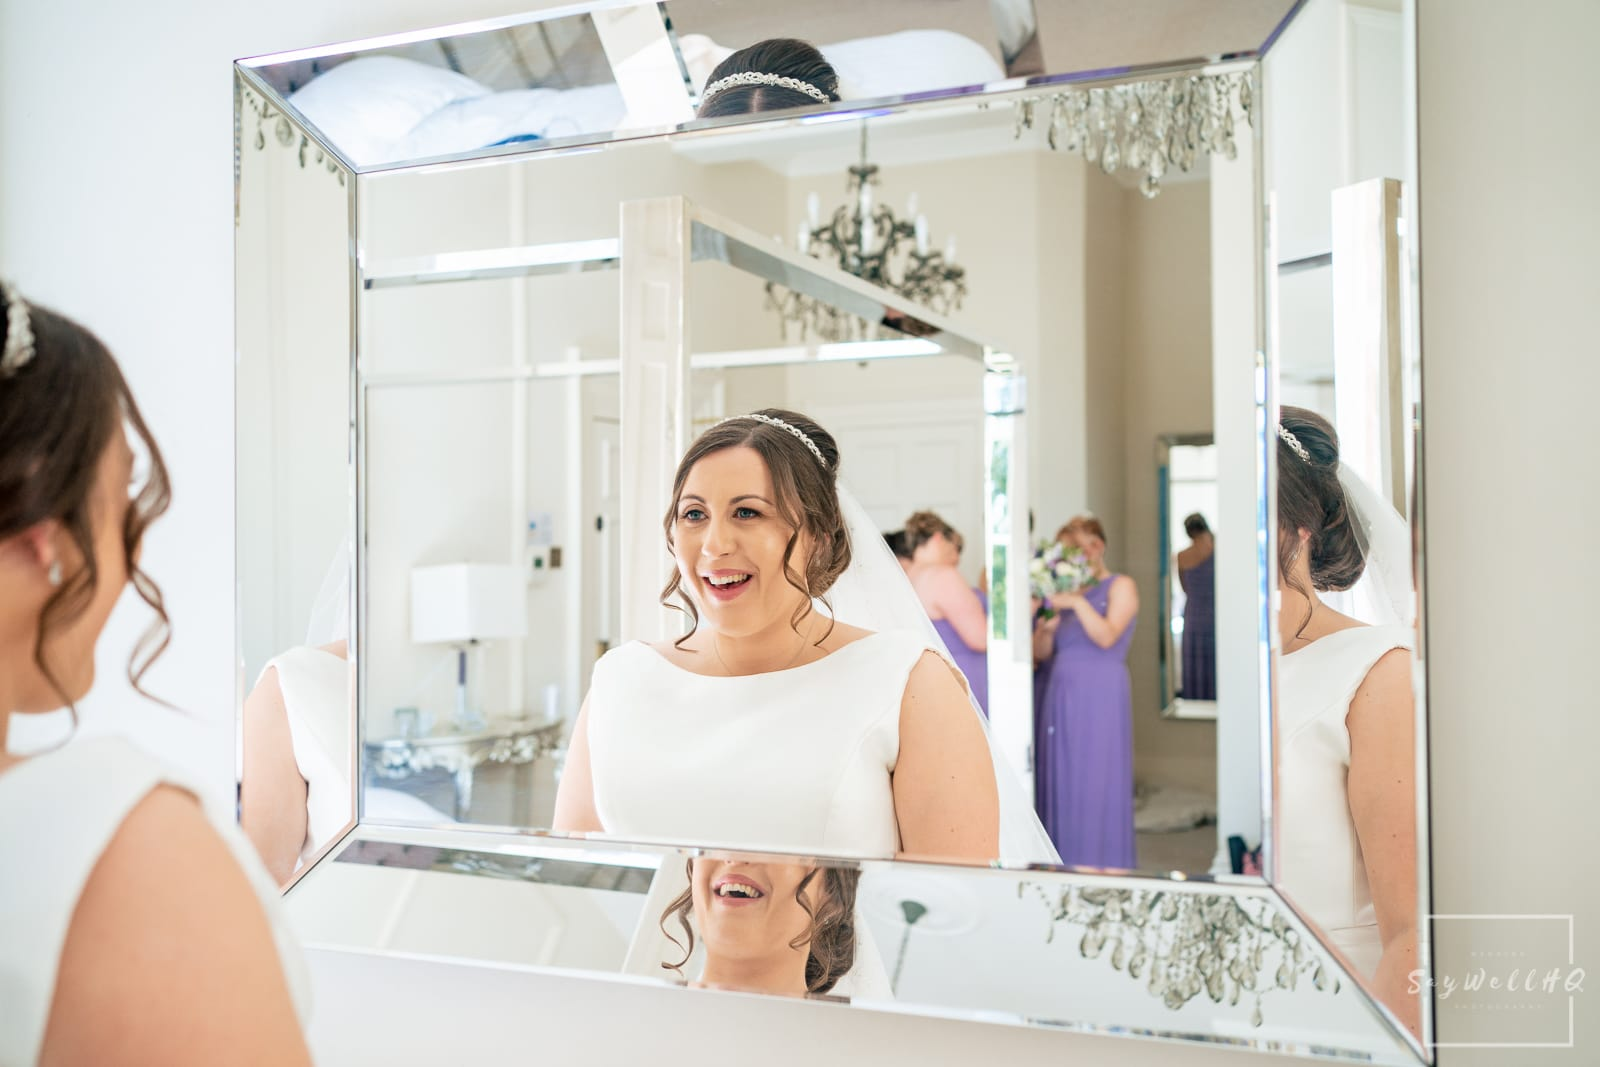 Winstanley House Wedding Photography - Bride and bridesmaids getting ready for the summer outdoor wedding